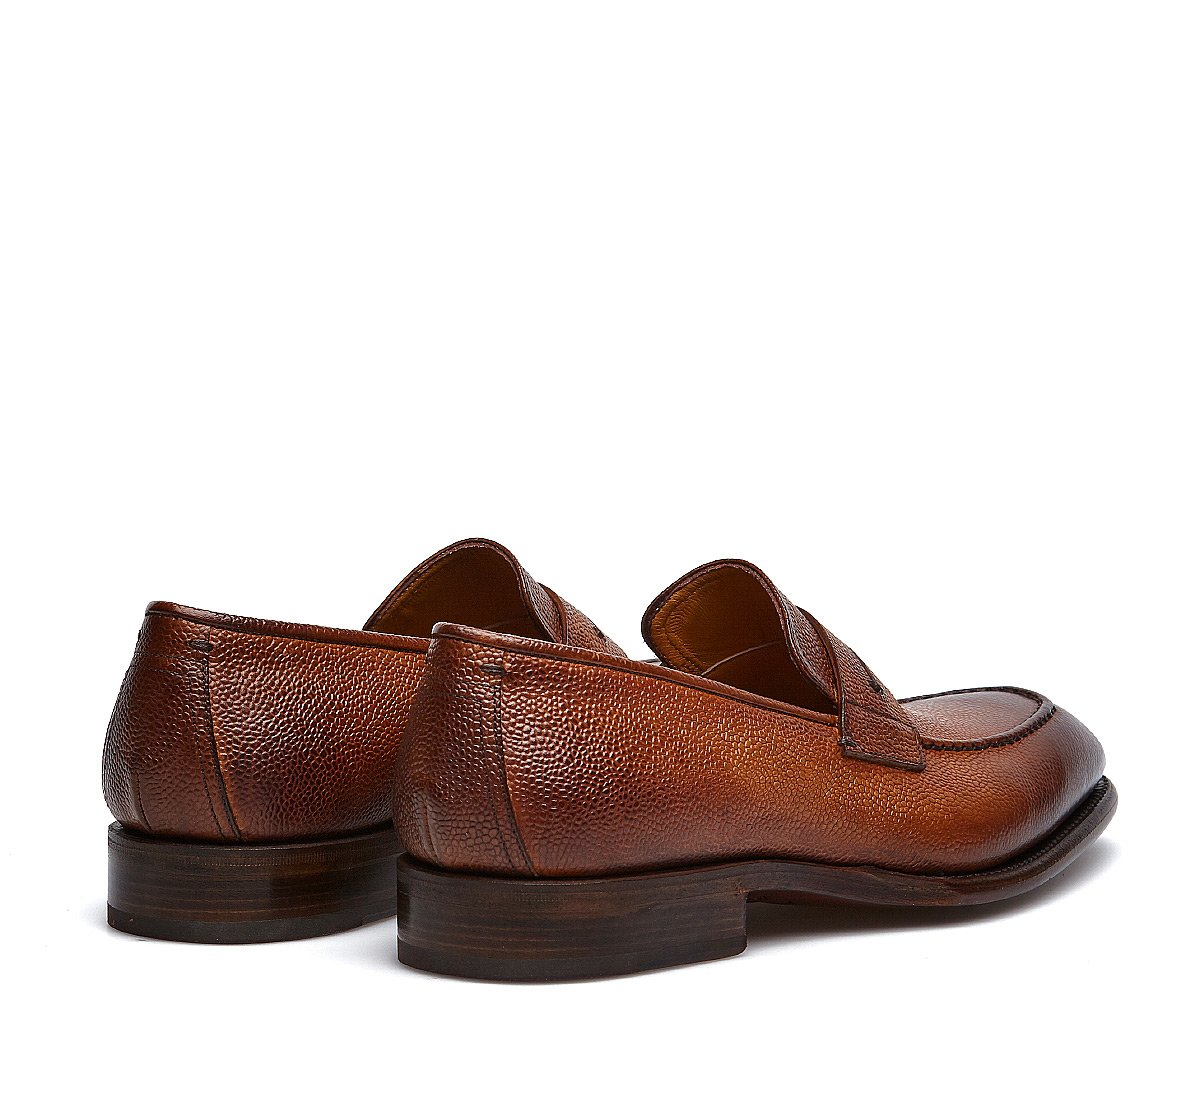 Fabi Flex Goodyear moccasins in exquisite calfskin